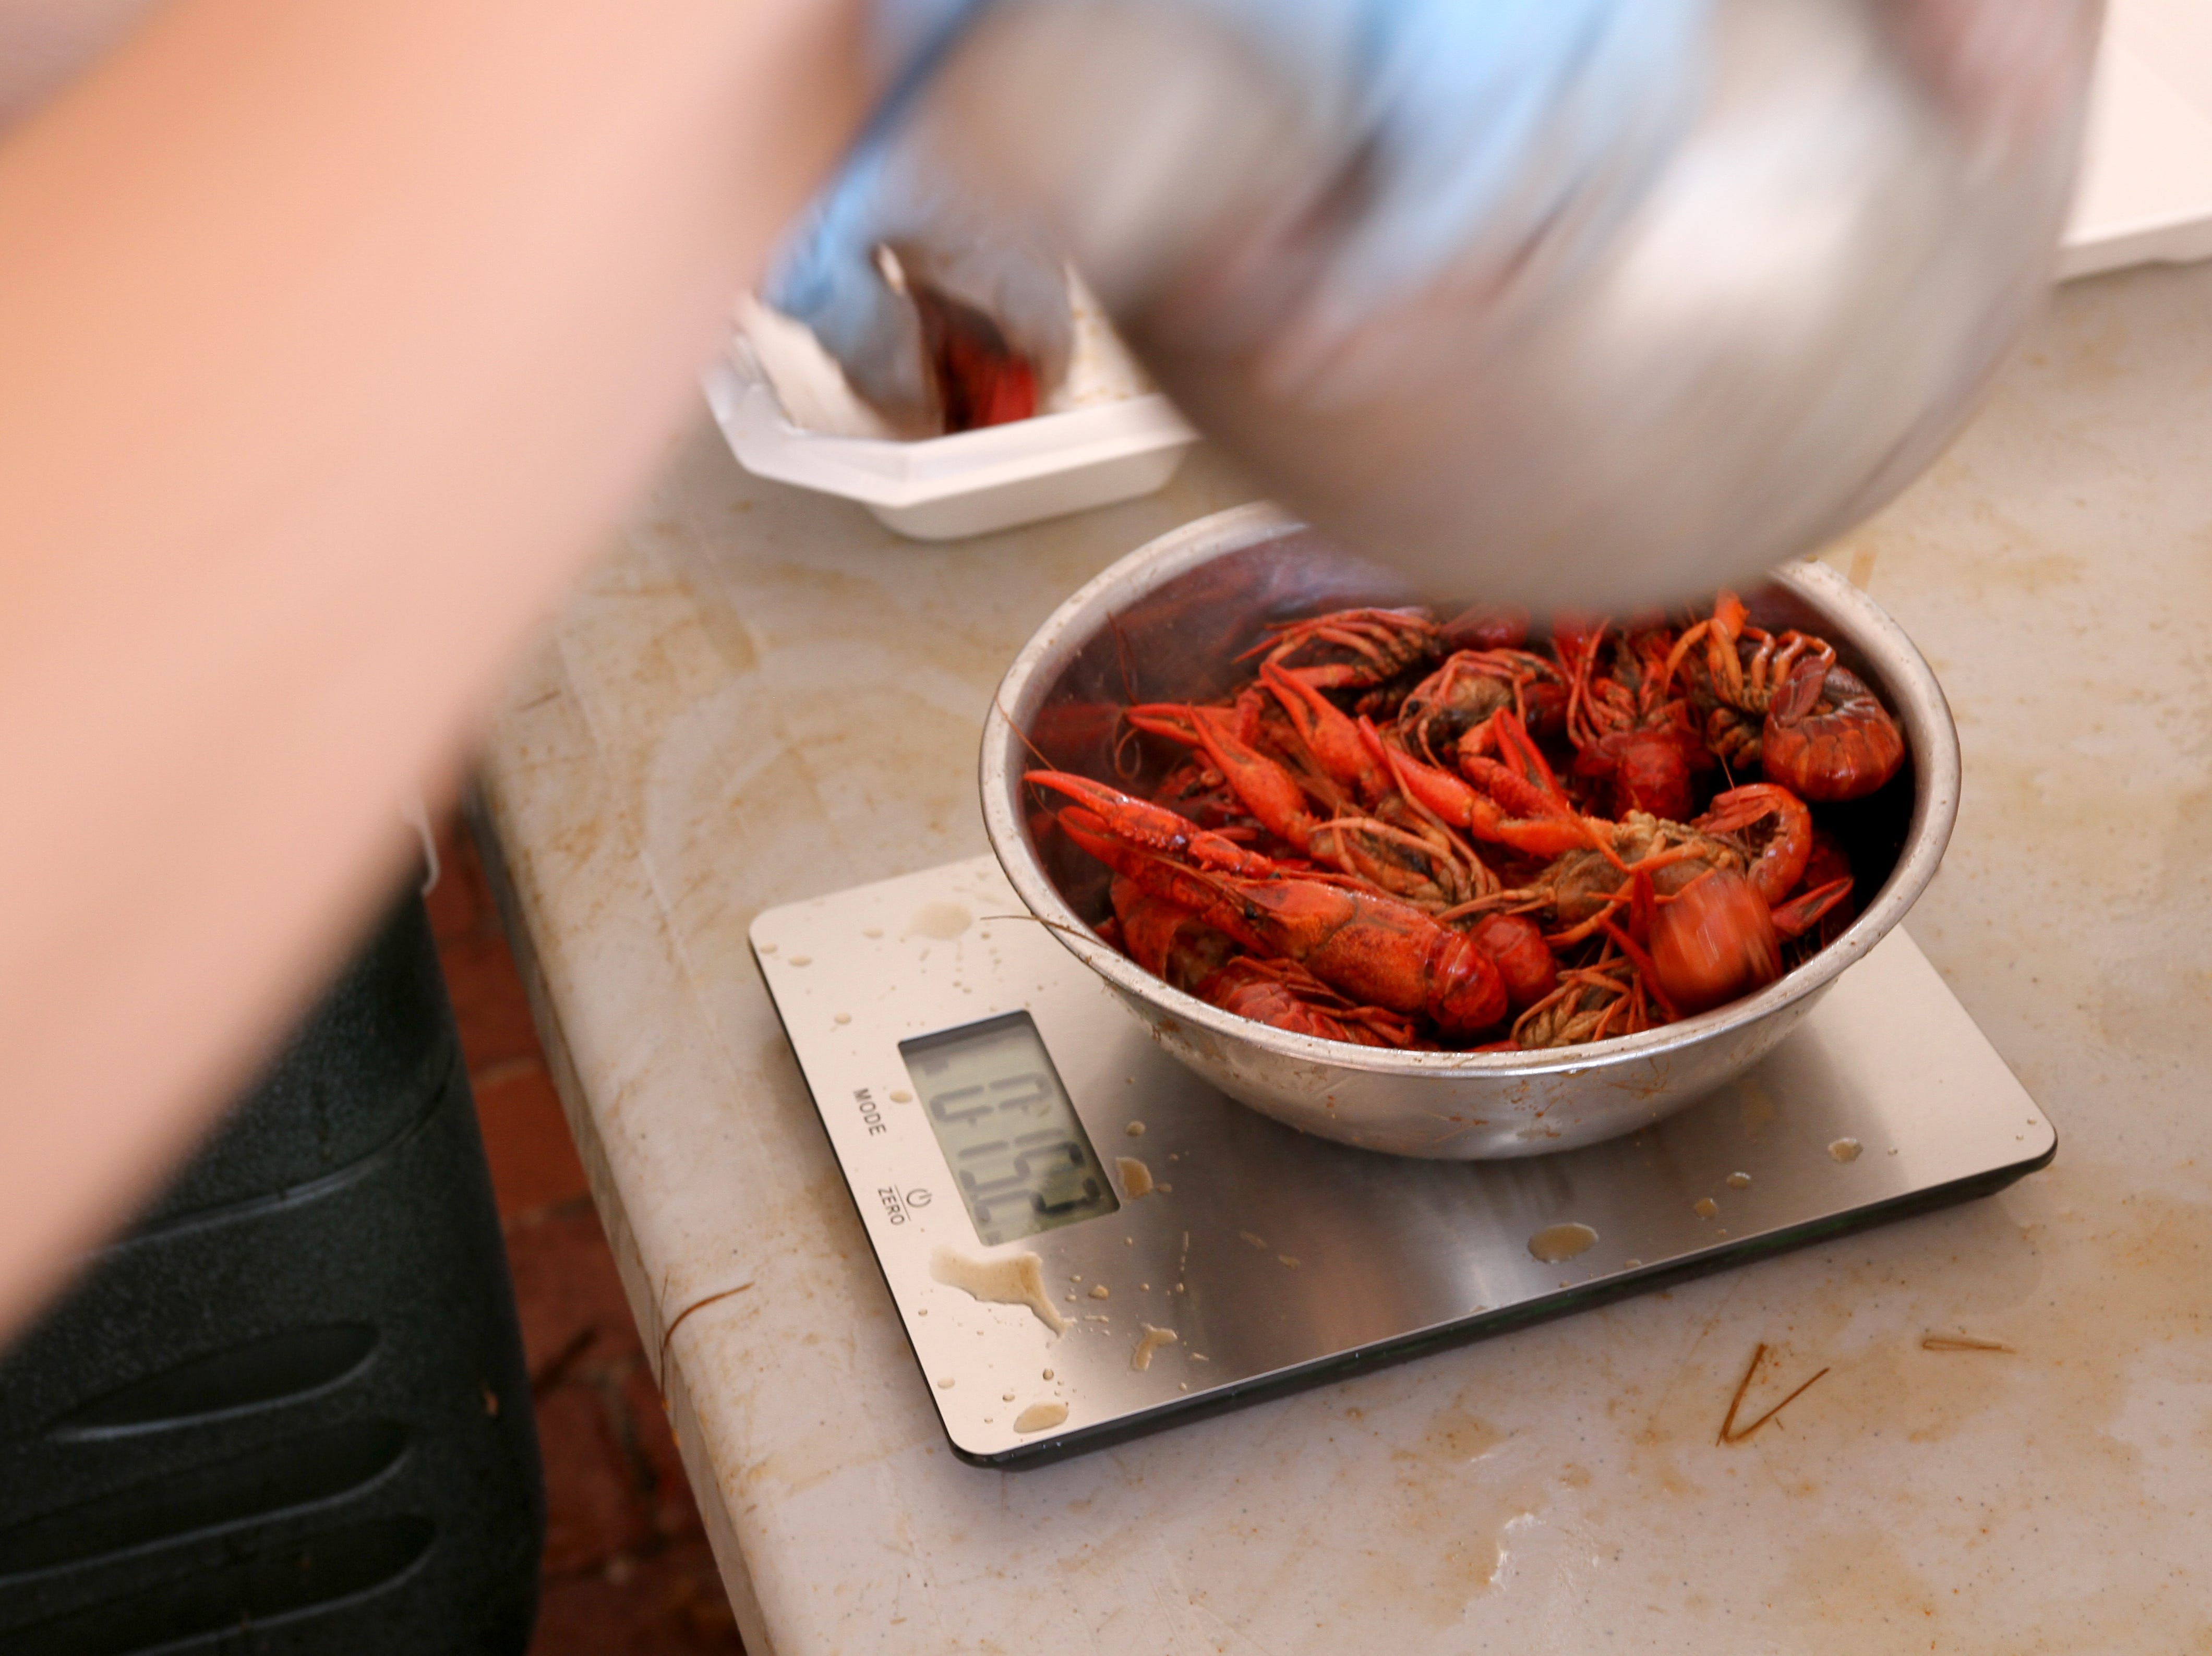 Crawfish is weighed at Cajun Fest Saturday, April 27, 2019, at 10th and Ohio downtown.